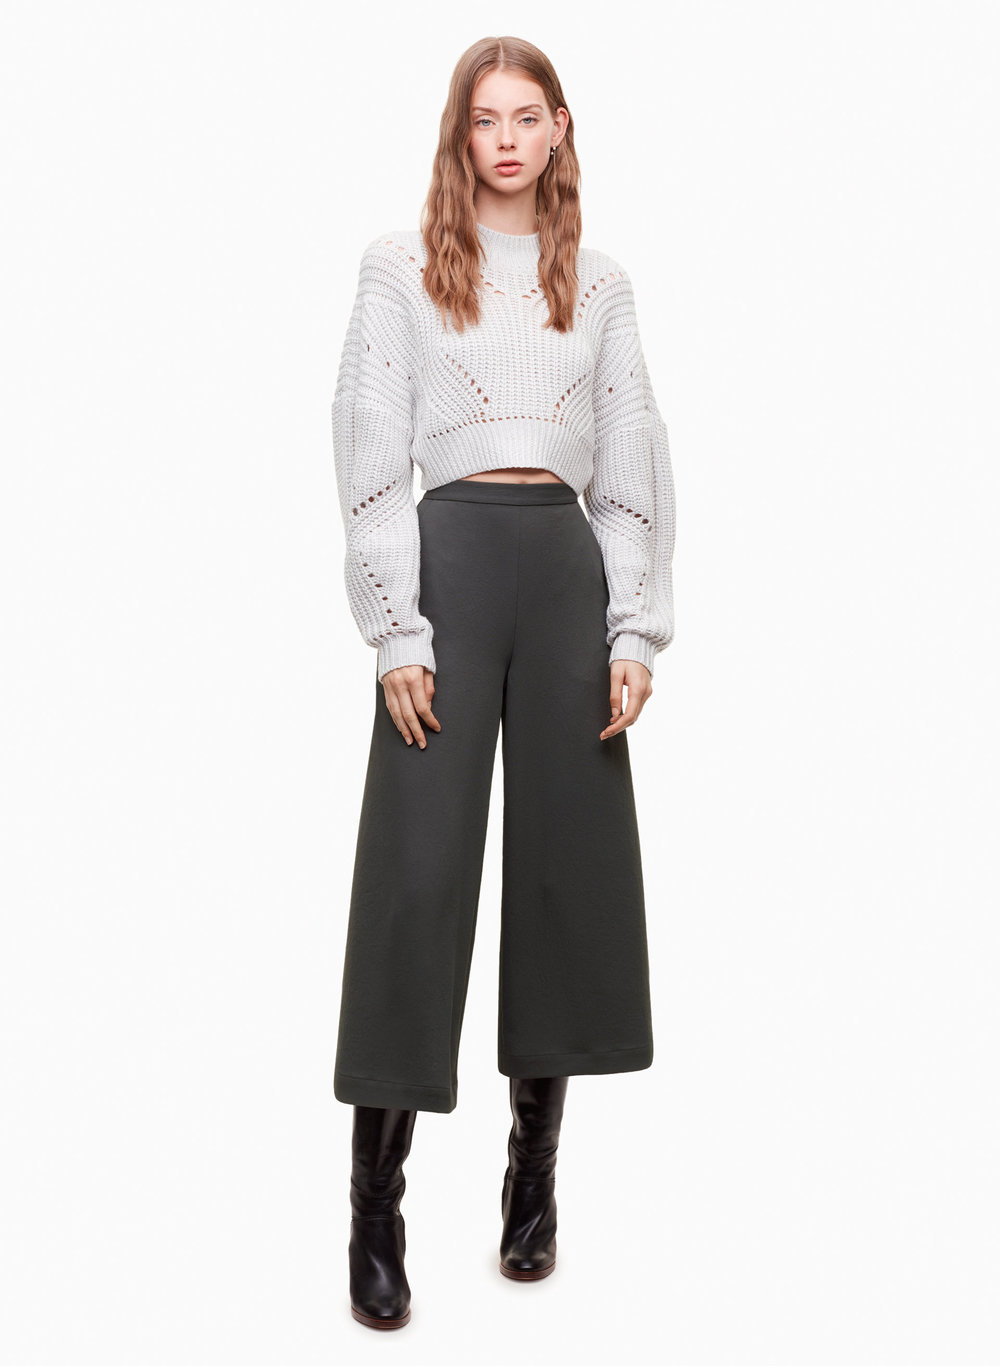 Wilfred  Lalemant Pant. Available in two colors. Aritzia. $135.